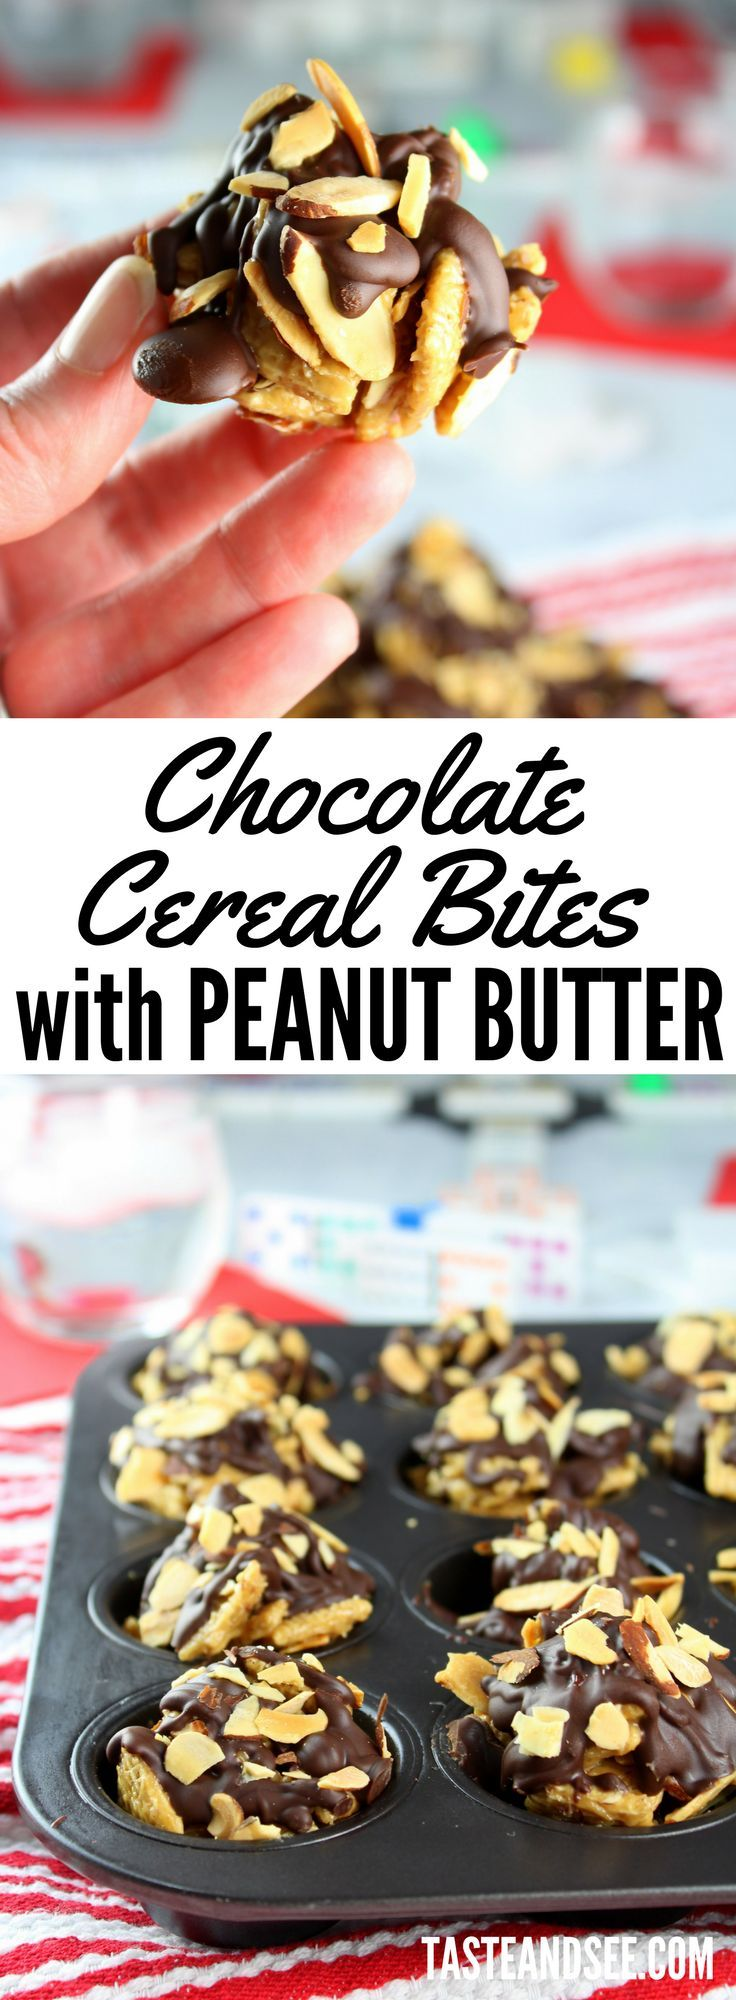 Chocolate Cereal Bites with Peanut Butter = the winning recipe for an after-school snack or a fun family game night!